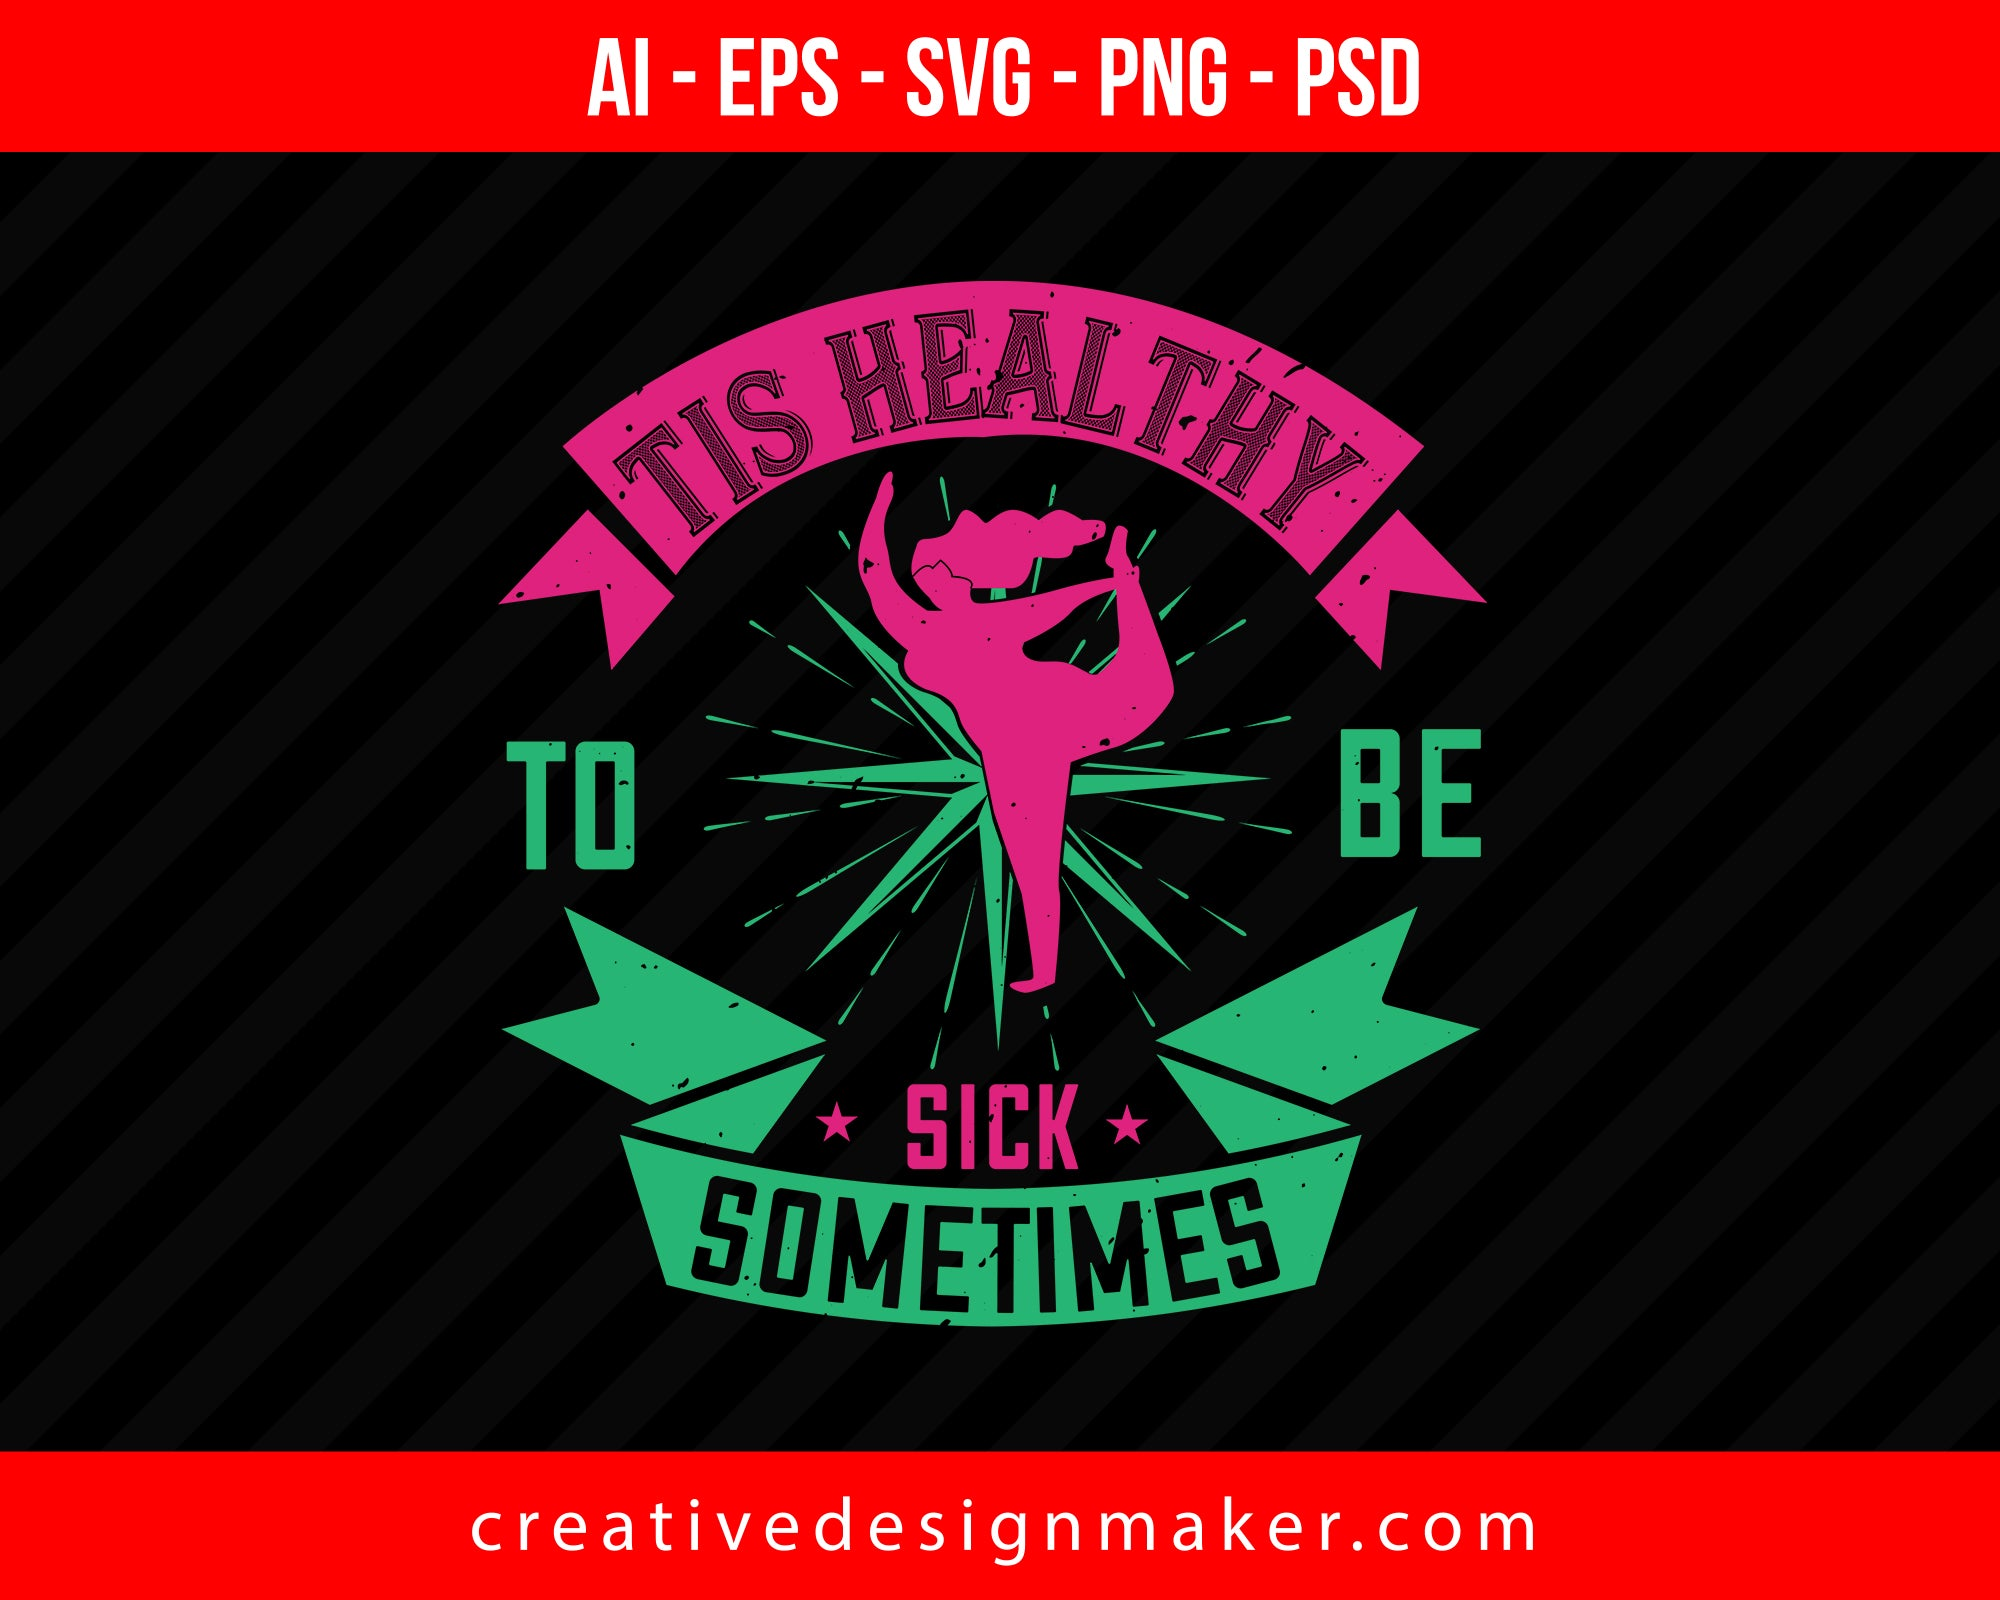 Tis Healthy To Be Sick Sometimes World Health Print Ready Editable T-Shirt SVG Design!